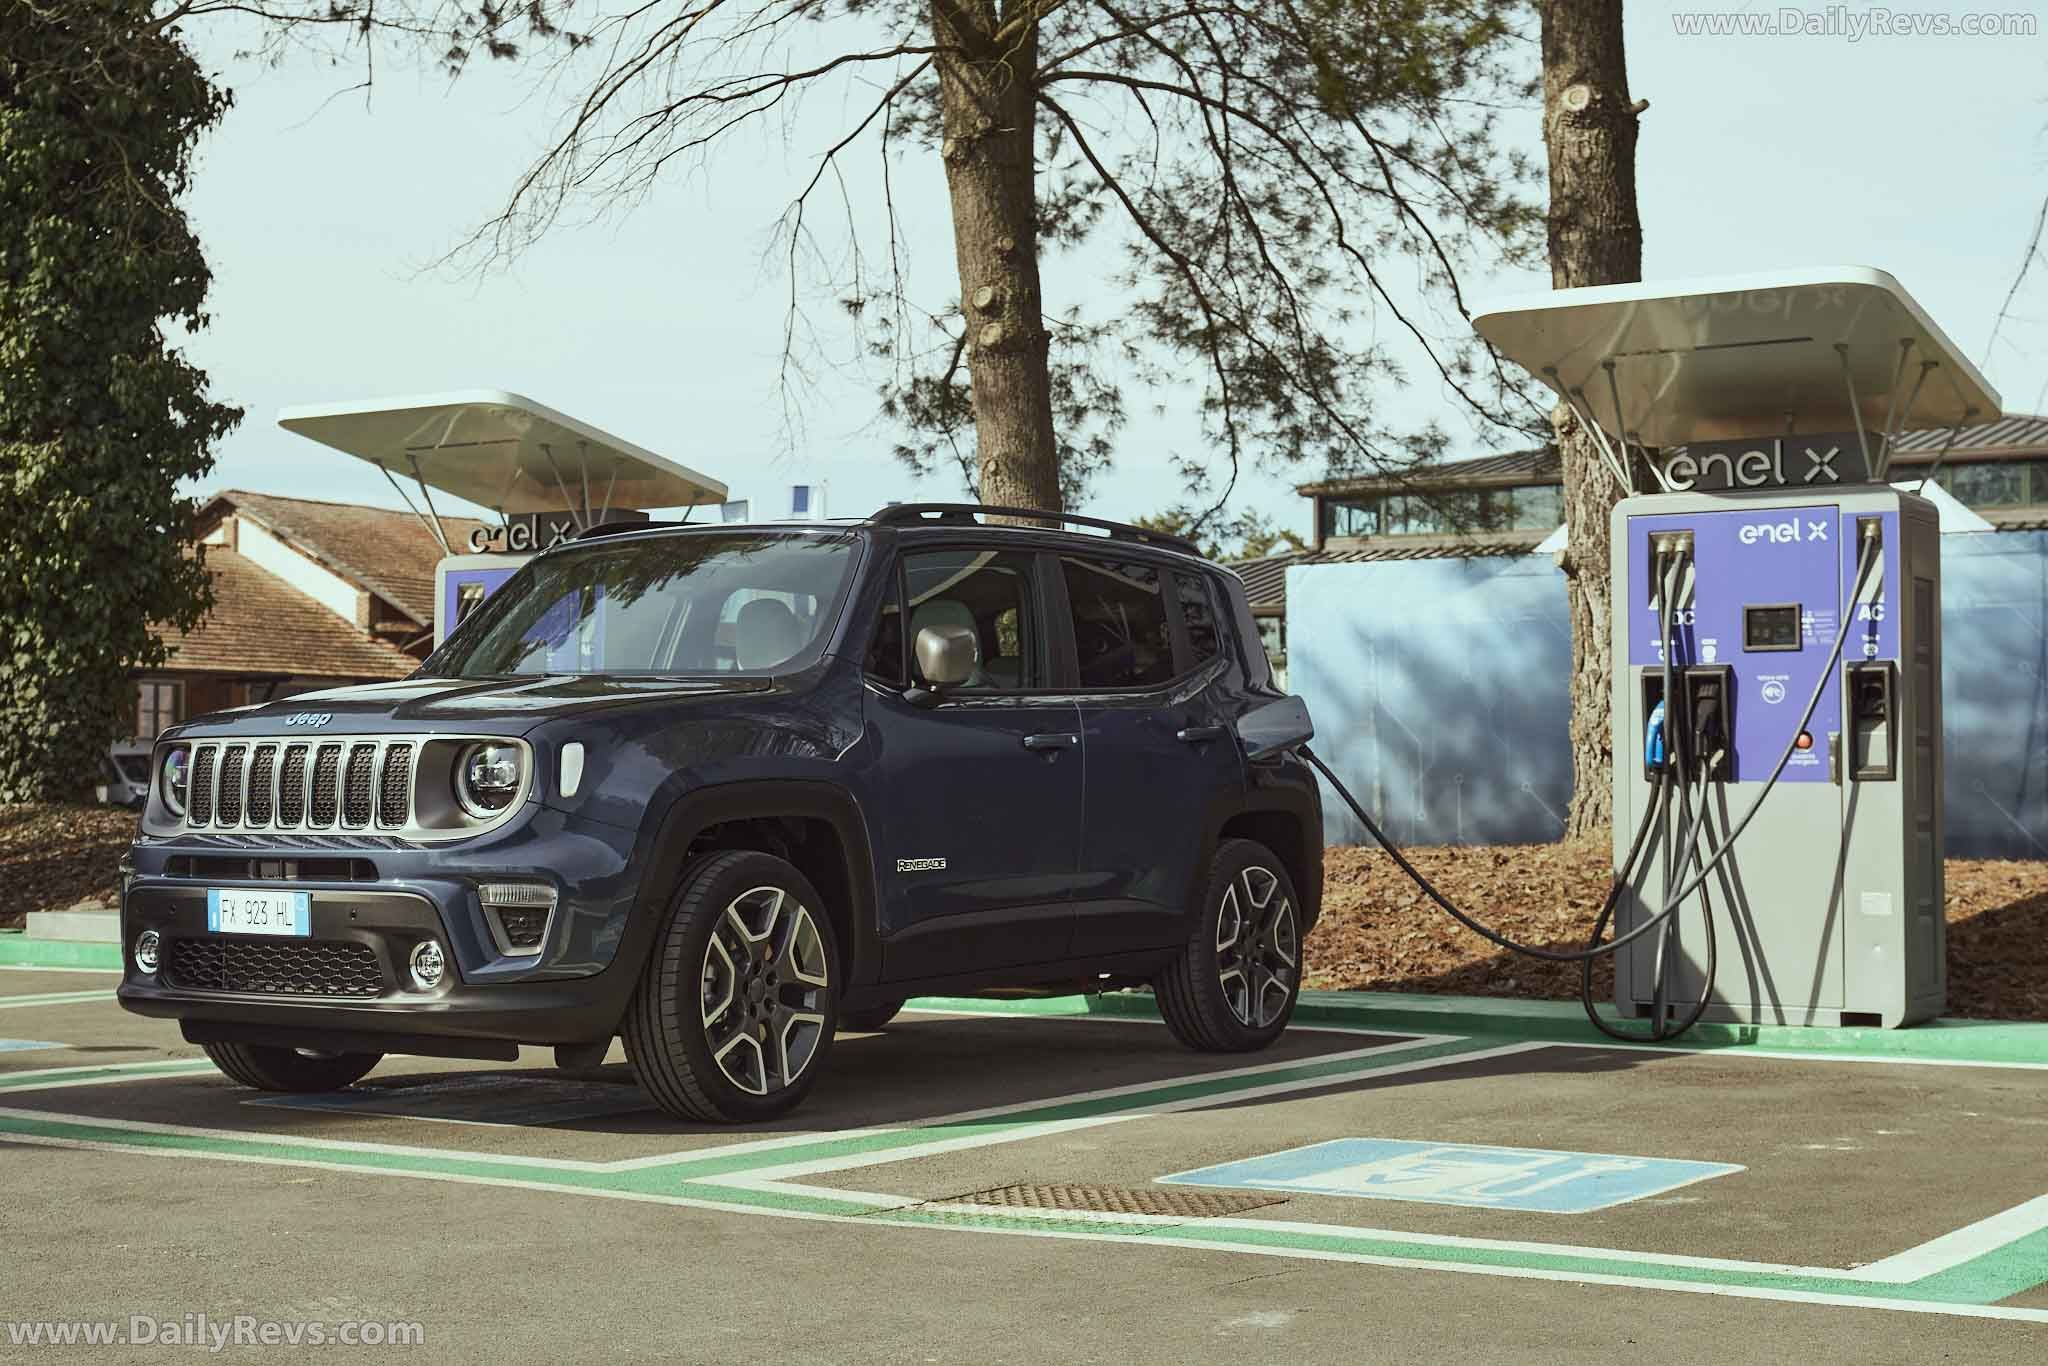 2021 Jeep Renegade 4xe Dailyrevs in 2020 Jeep renegade